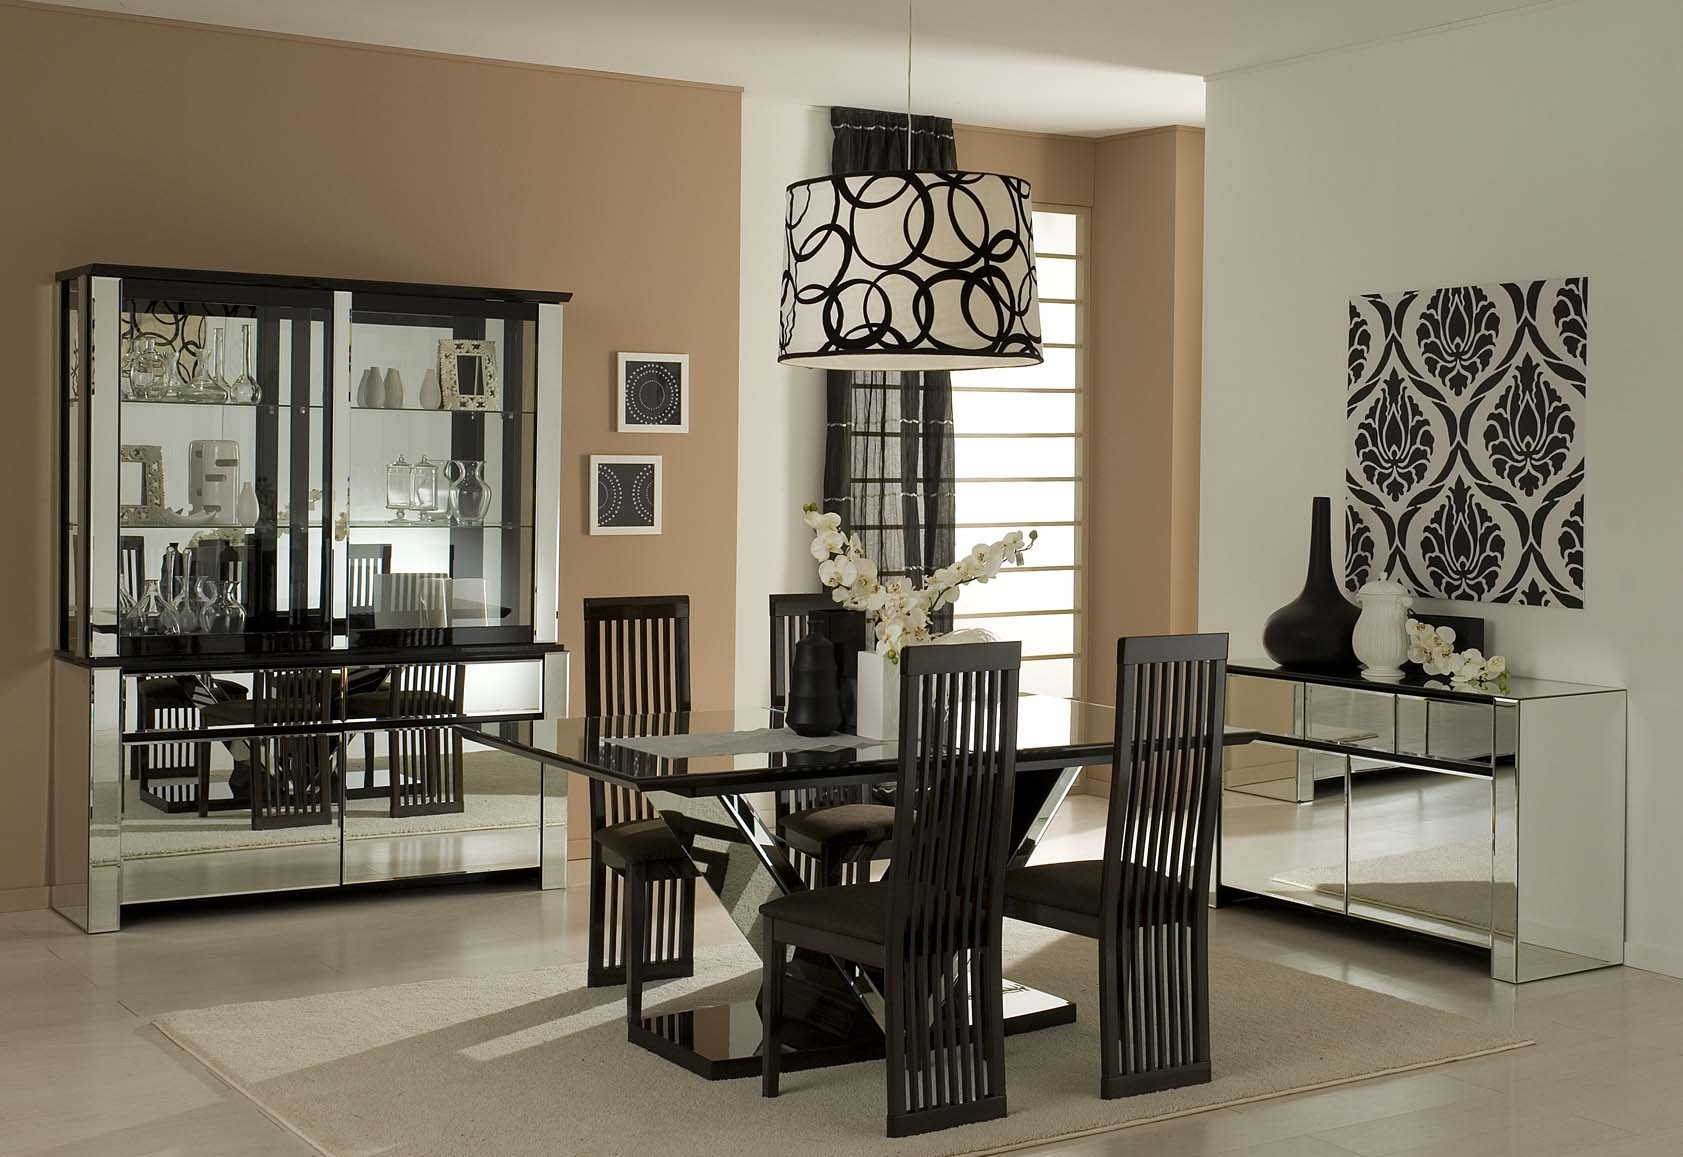 wall decorating ideas for dining room - Design Ideas Dining Room